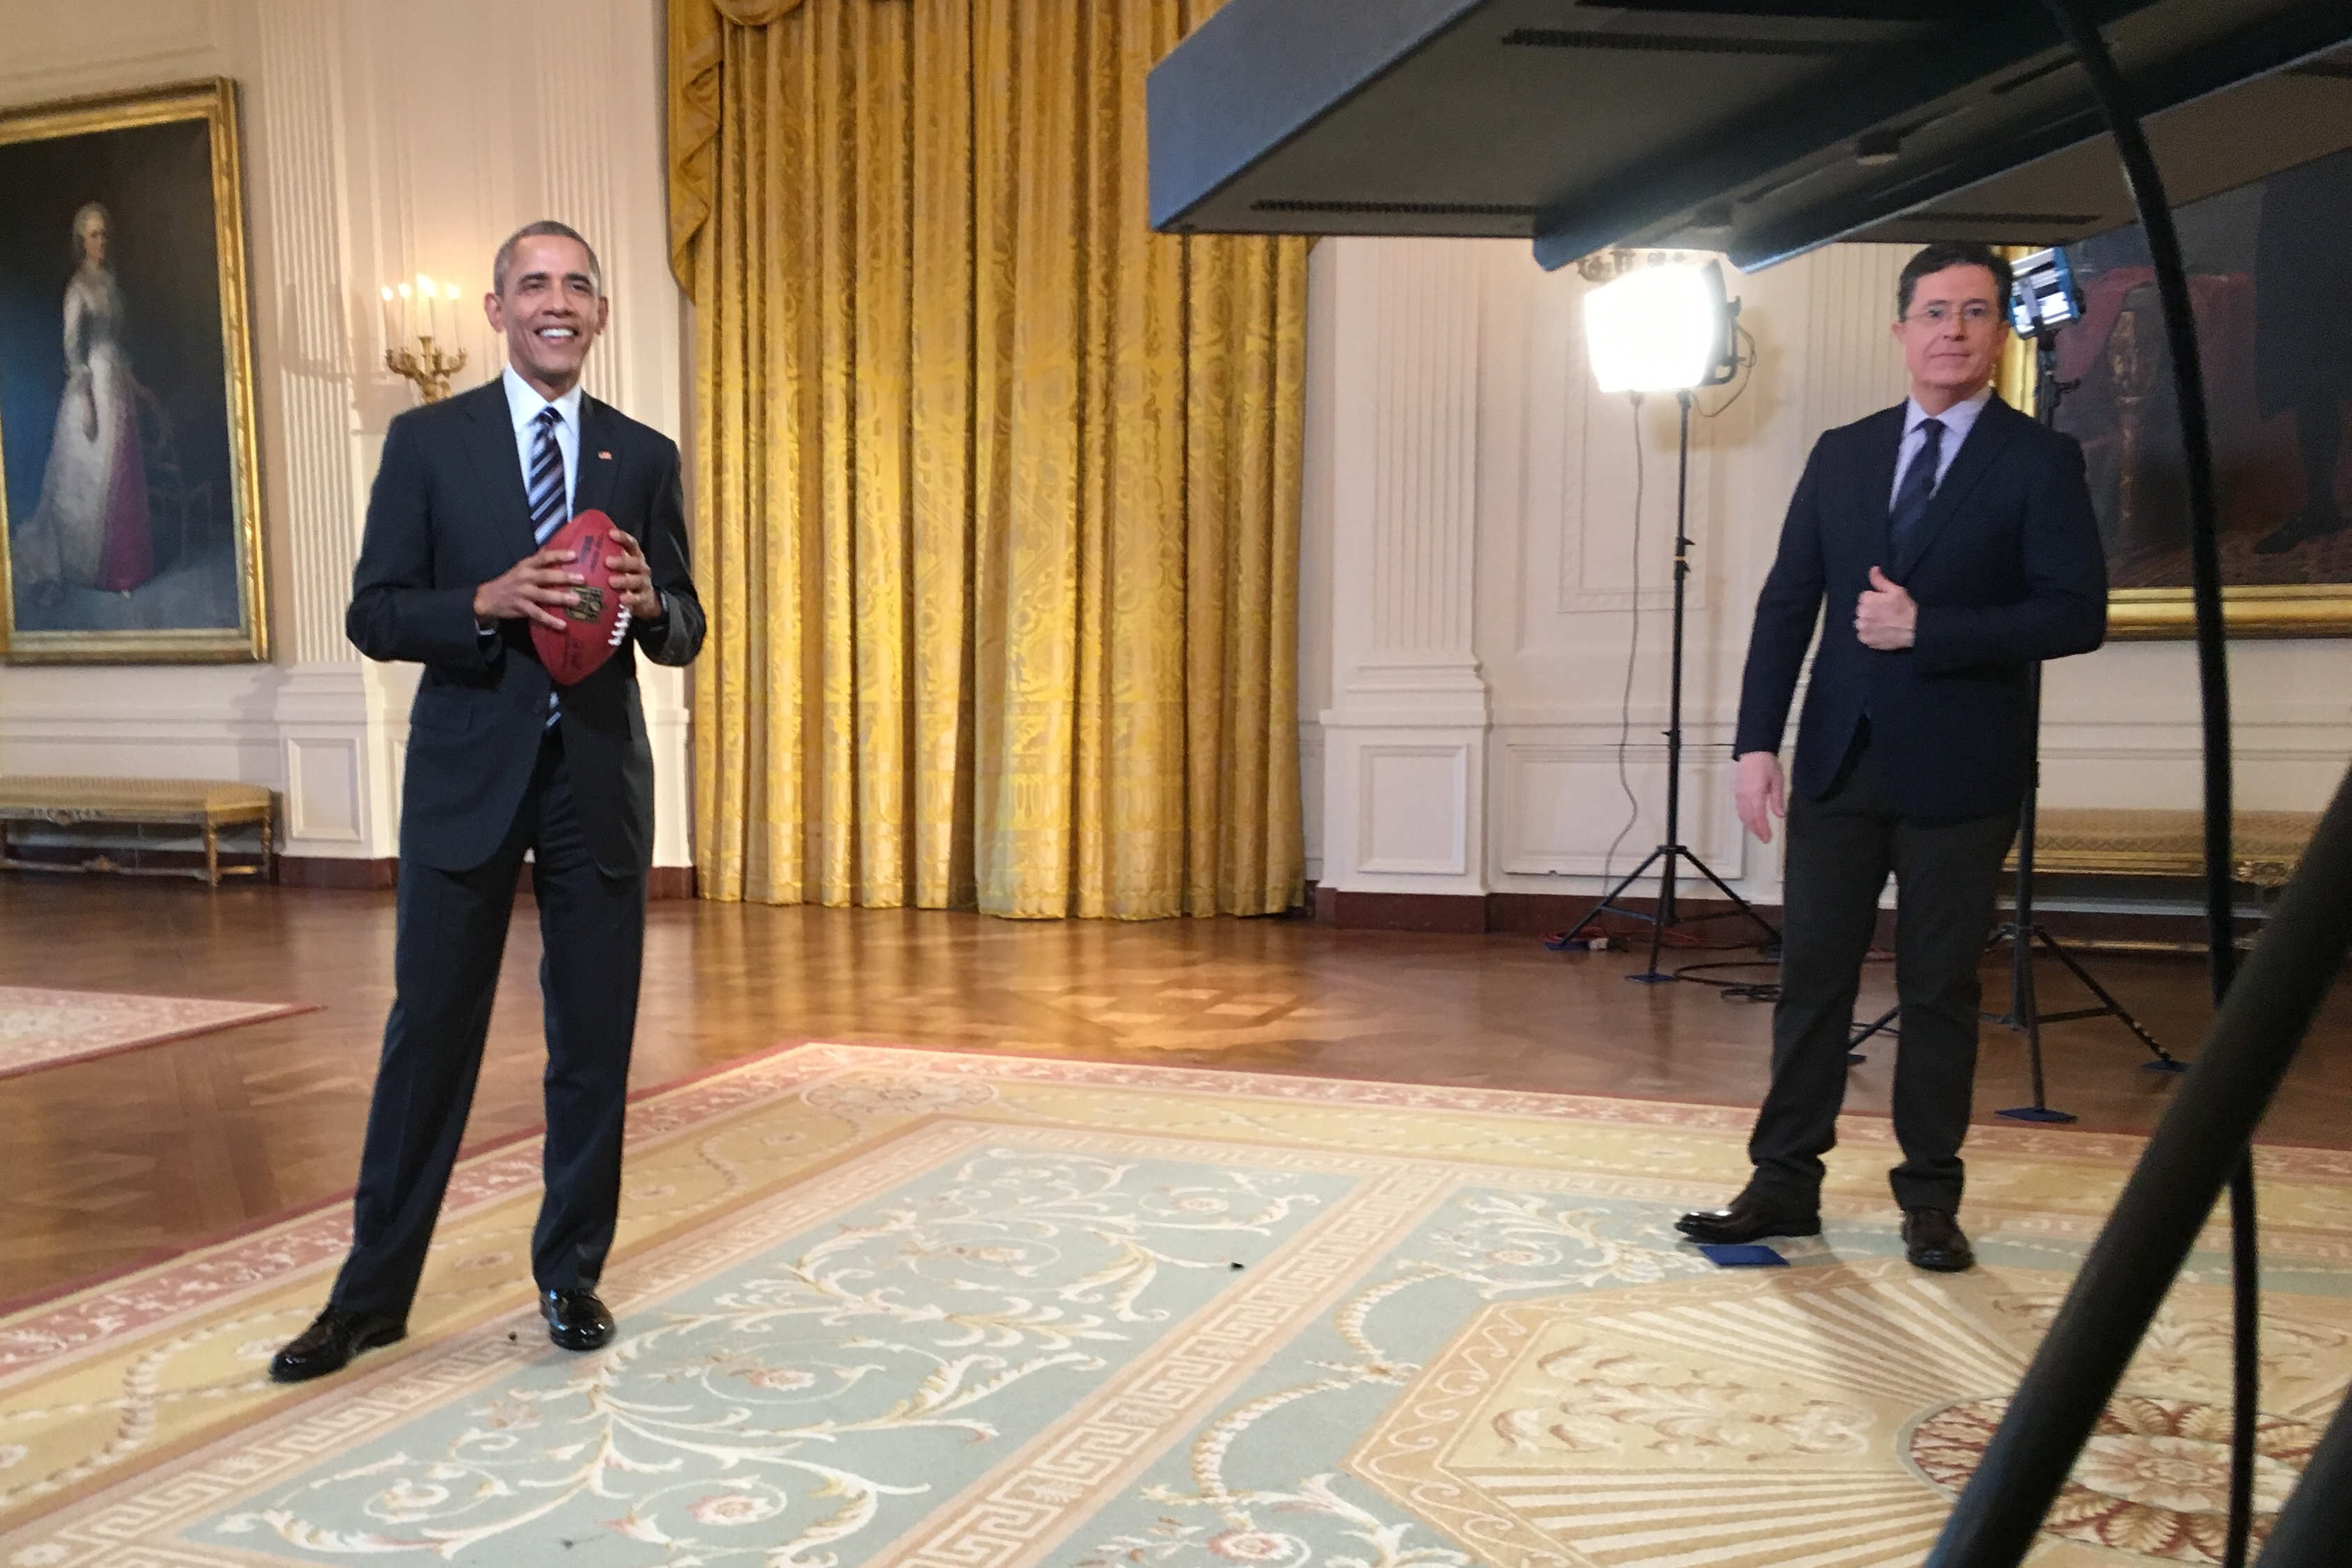 President Obama and Stephen Colbert for the post Super Bowl Late Show